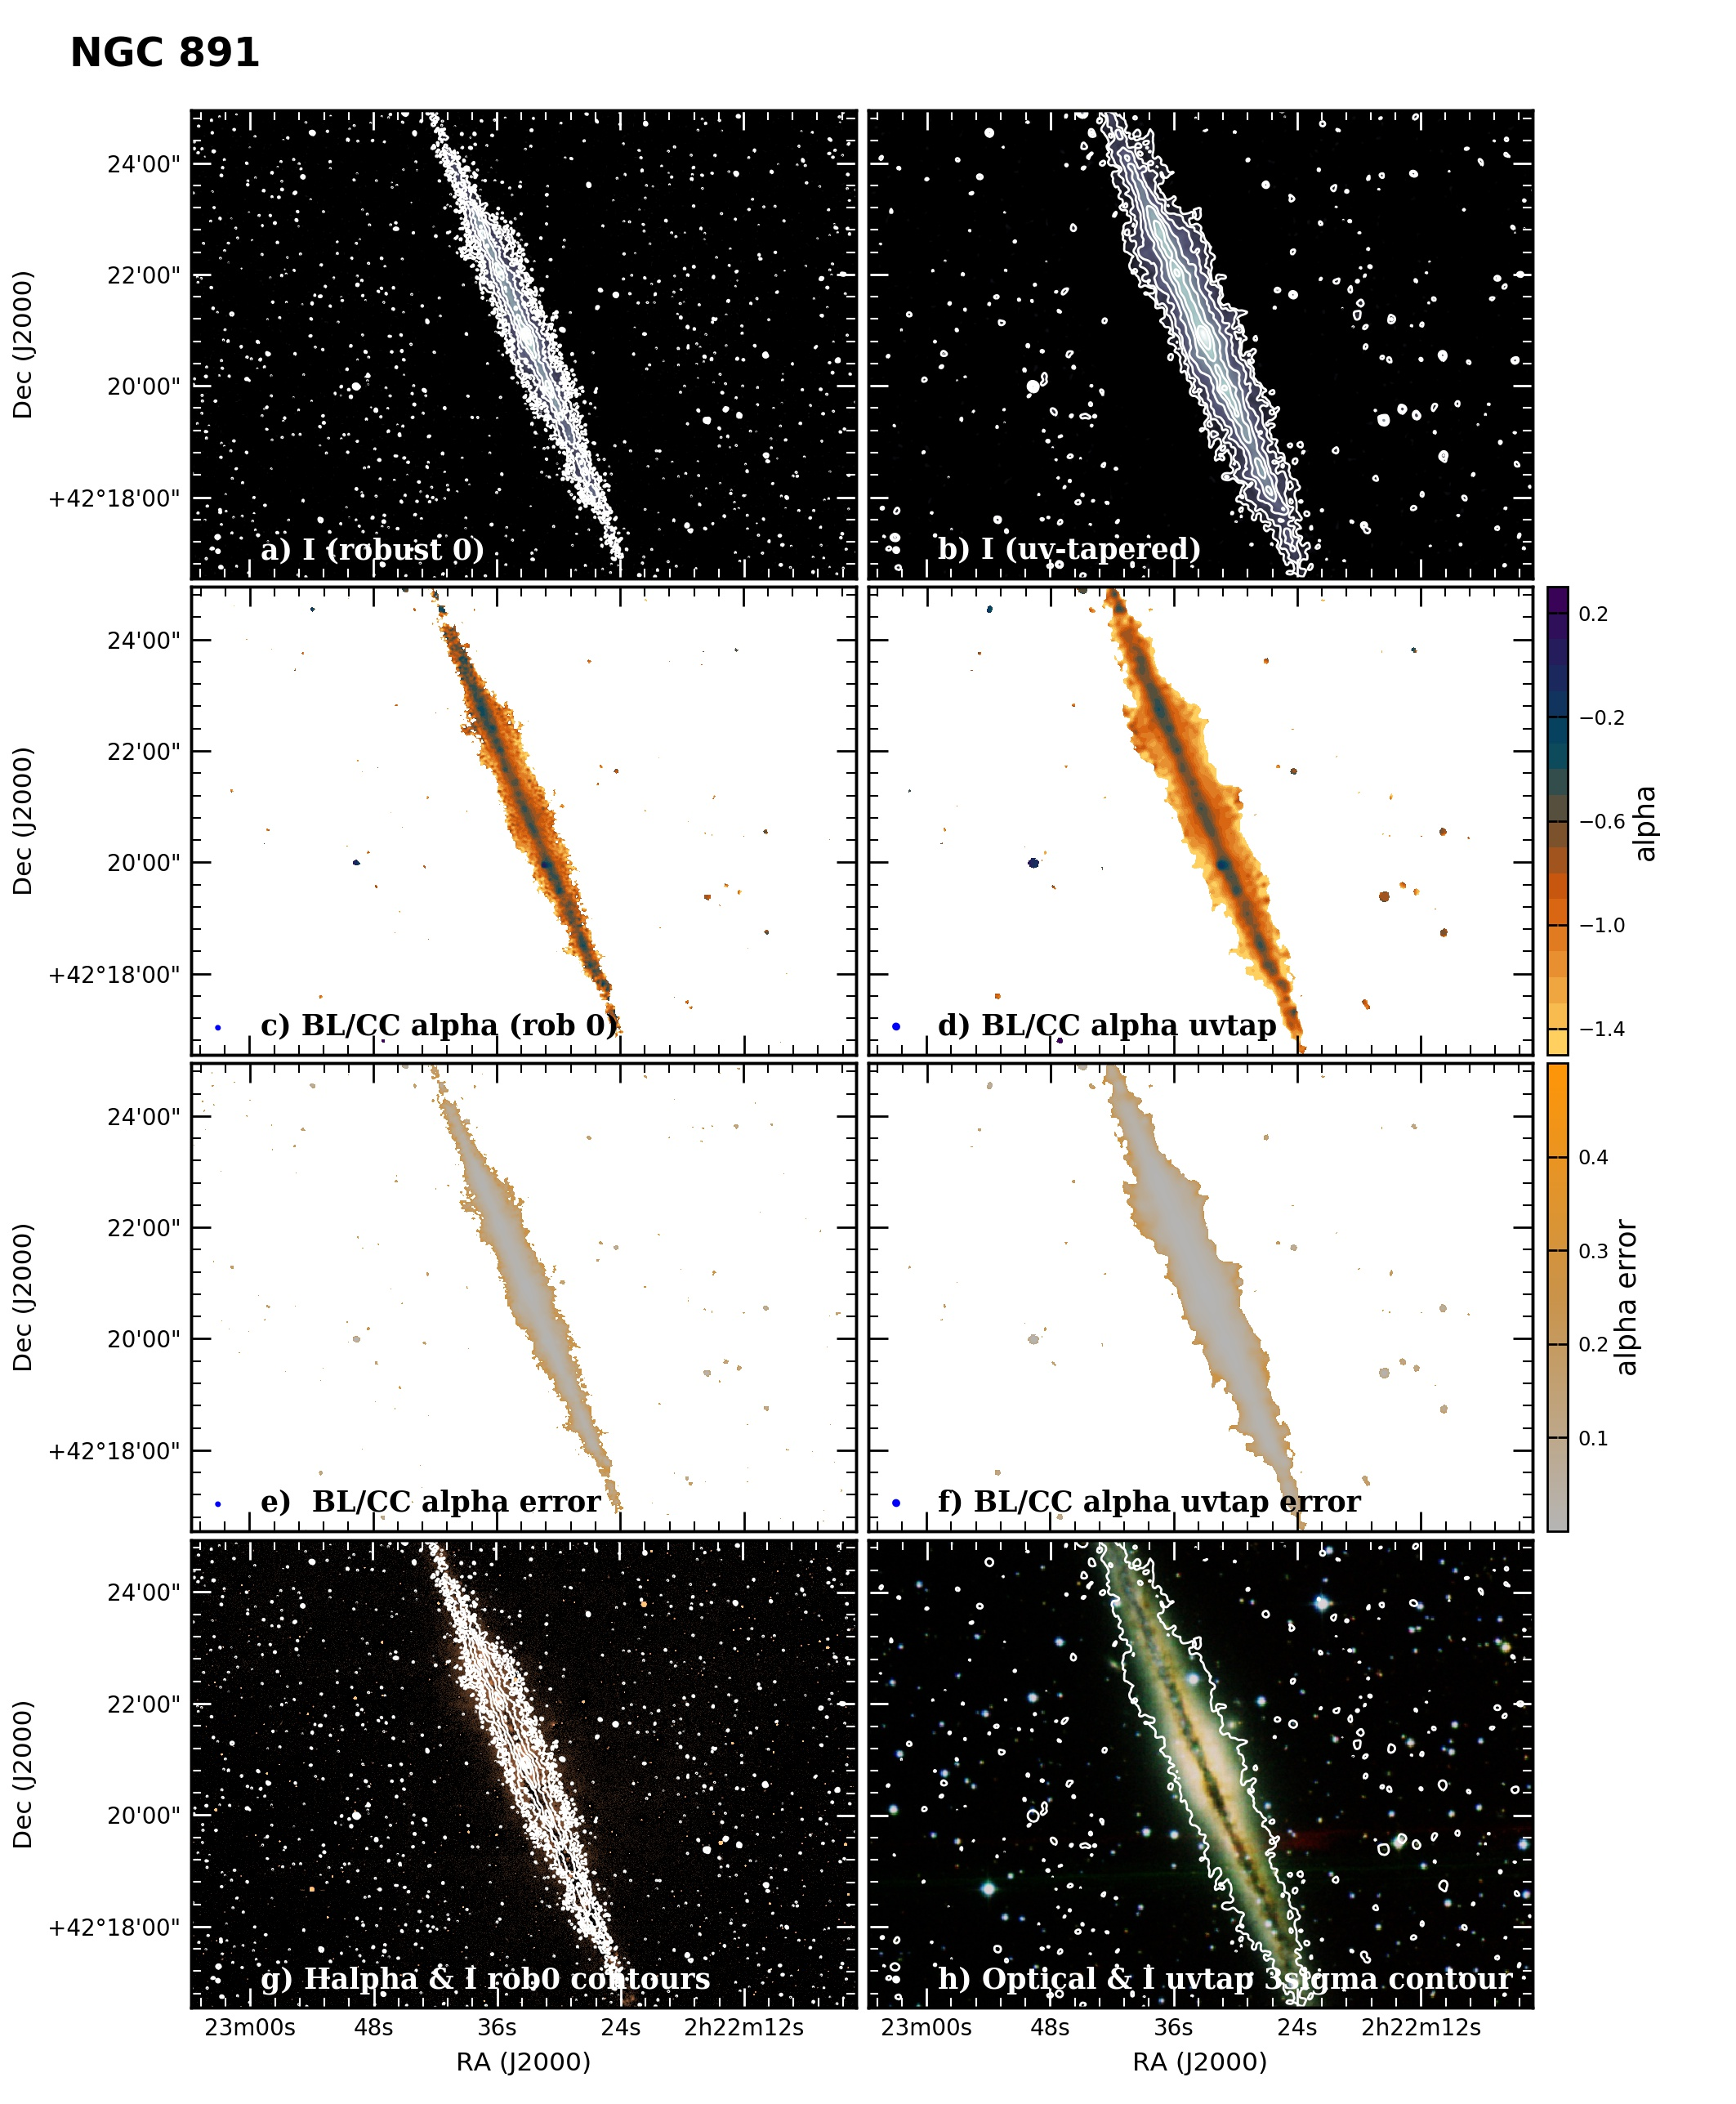 Panel image of NGC891 from B configuration data release III (Irwin et al. 2019)